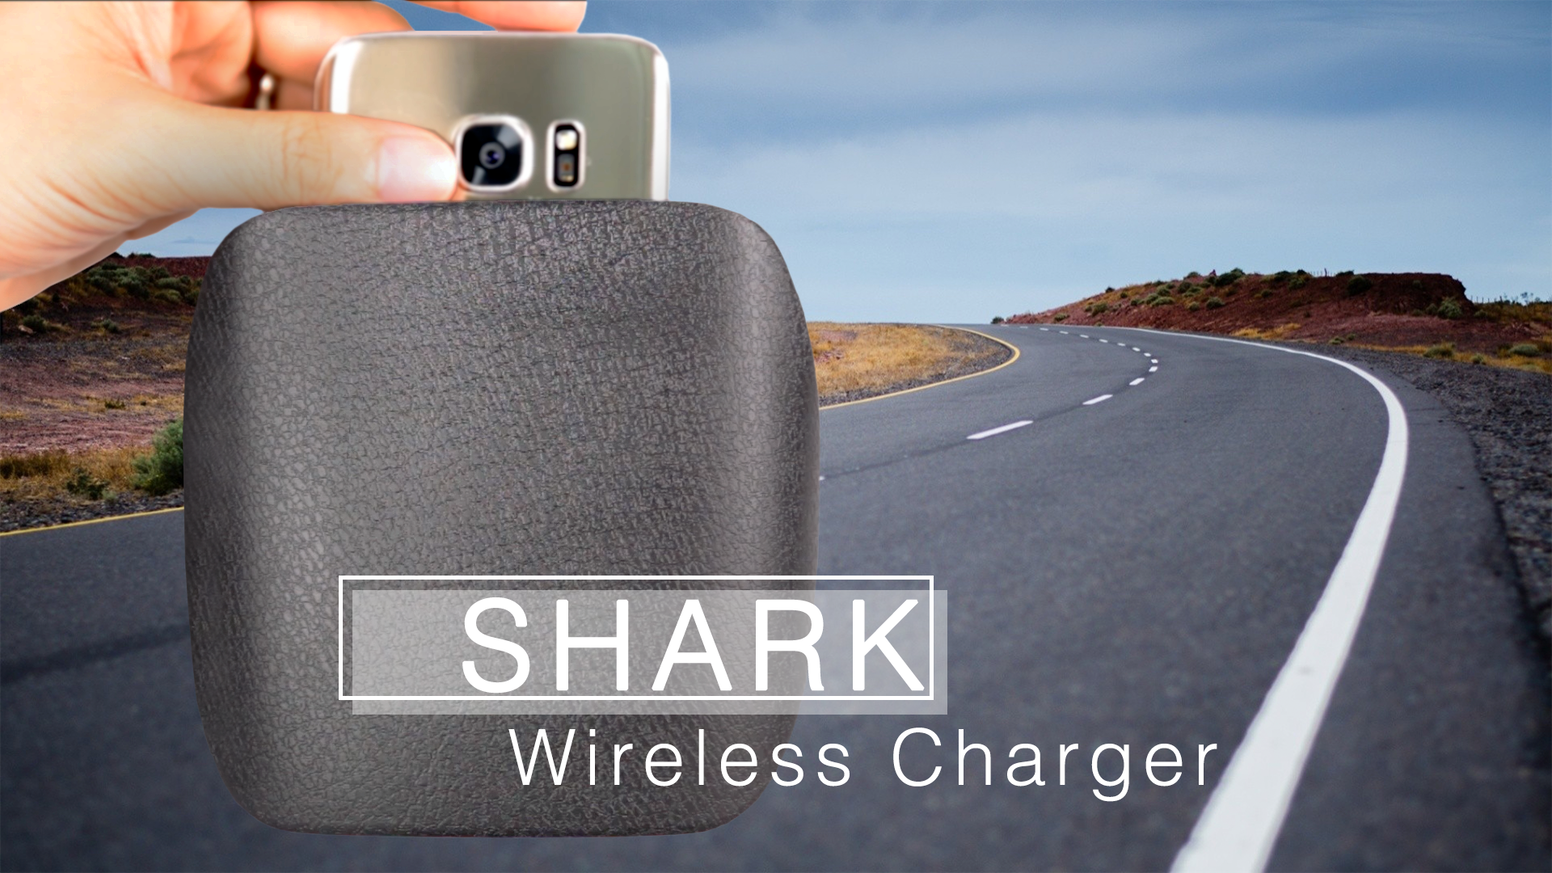 SHARK wireless charger, a new breed of universal car charger that charges cellphones and encourages good driving habits.